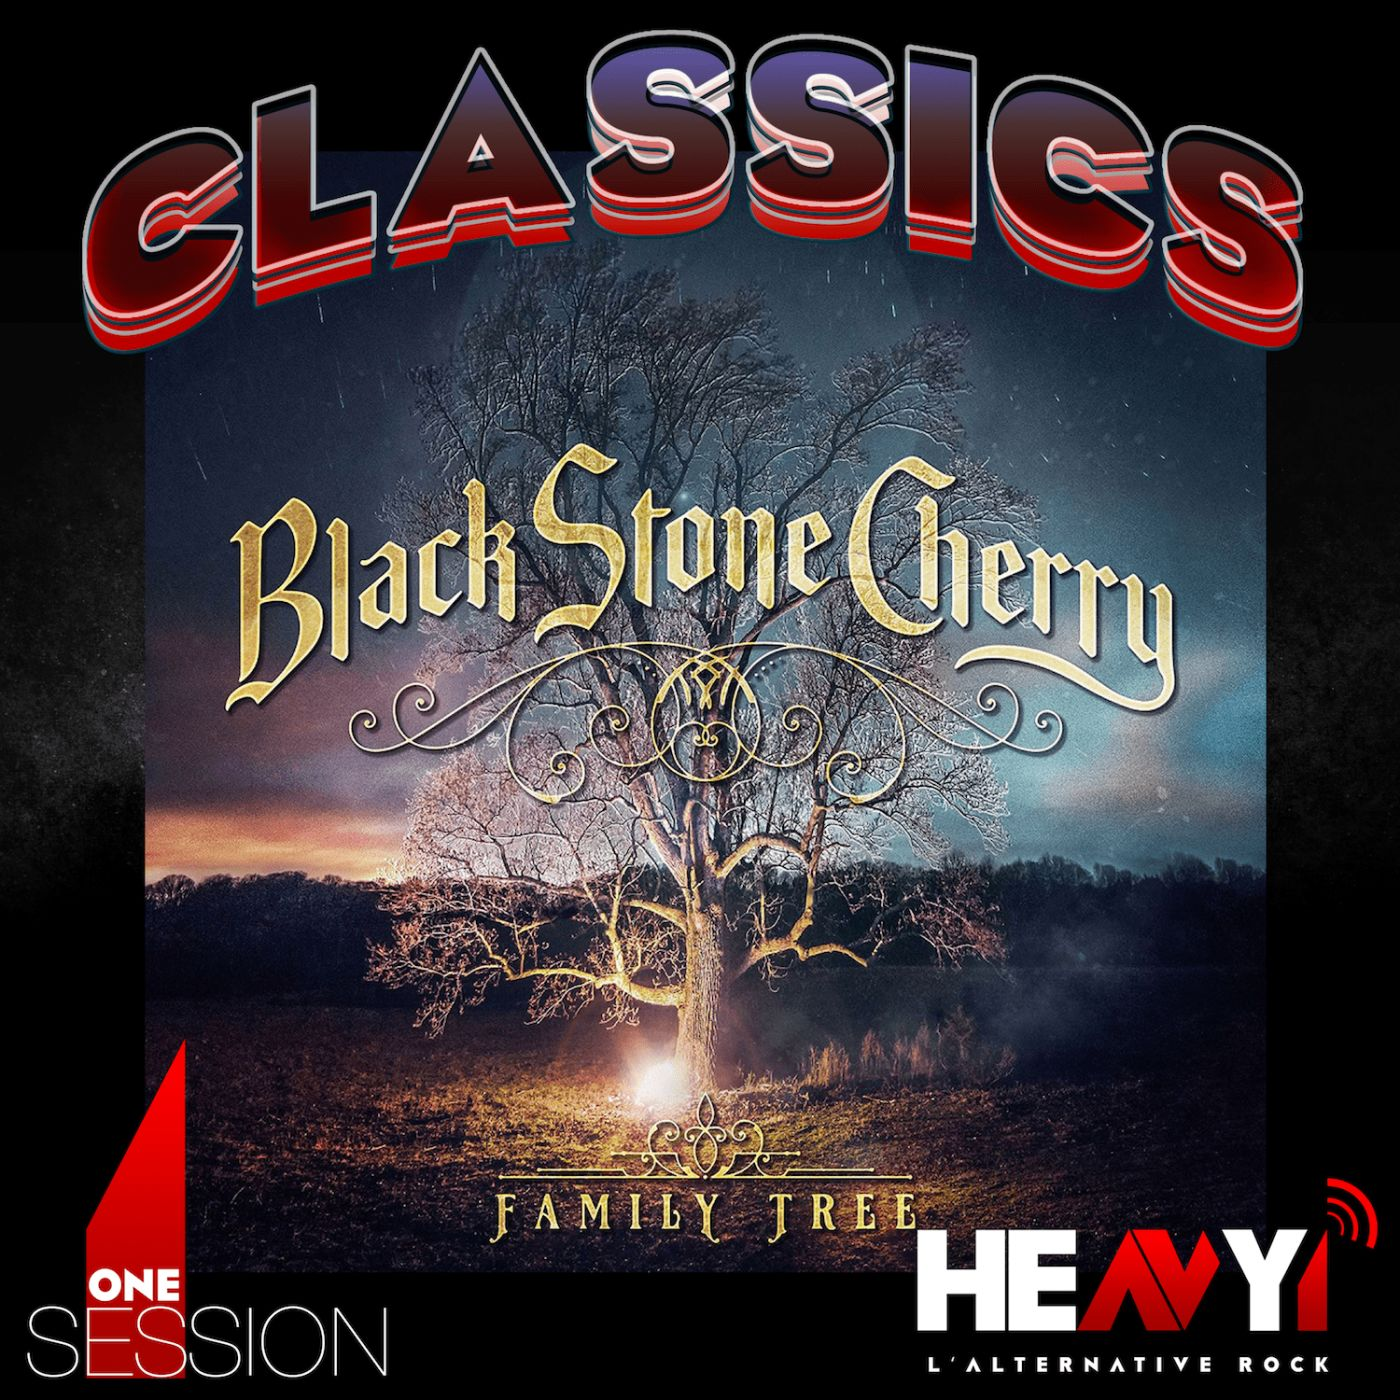 One Session avec Black Stone Cherry